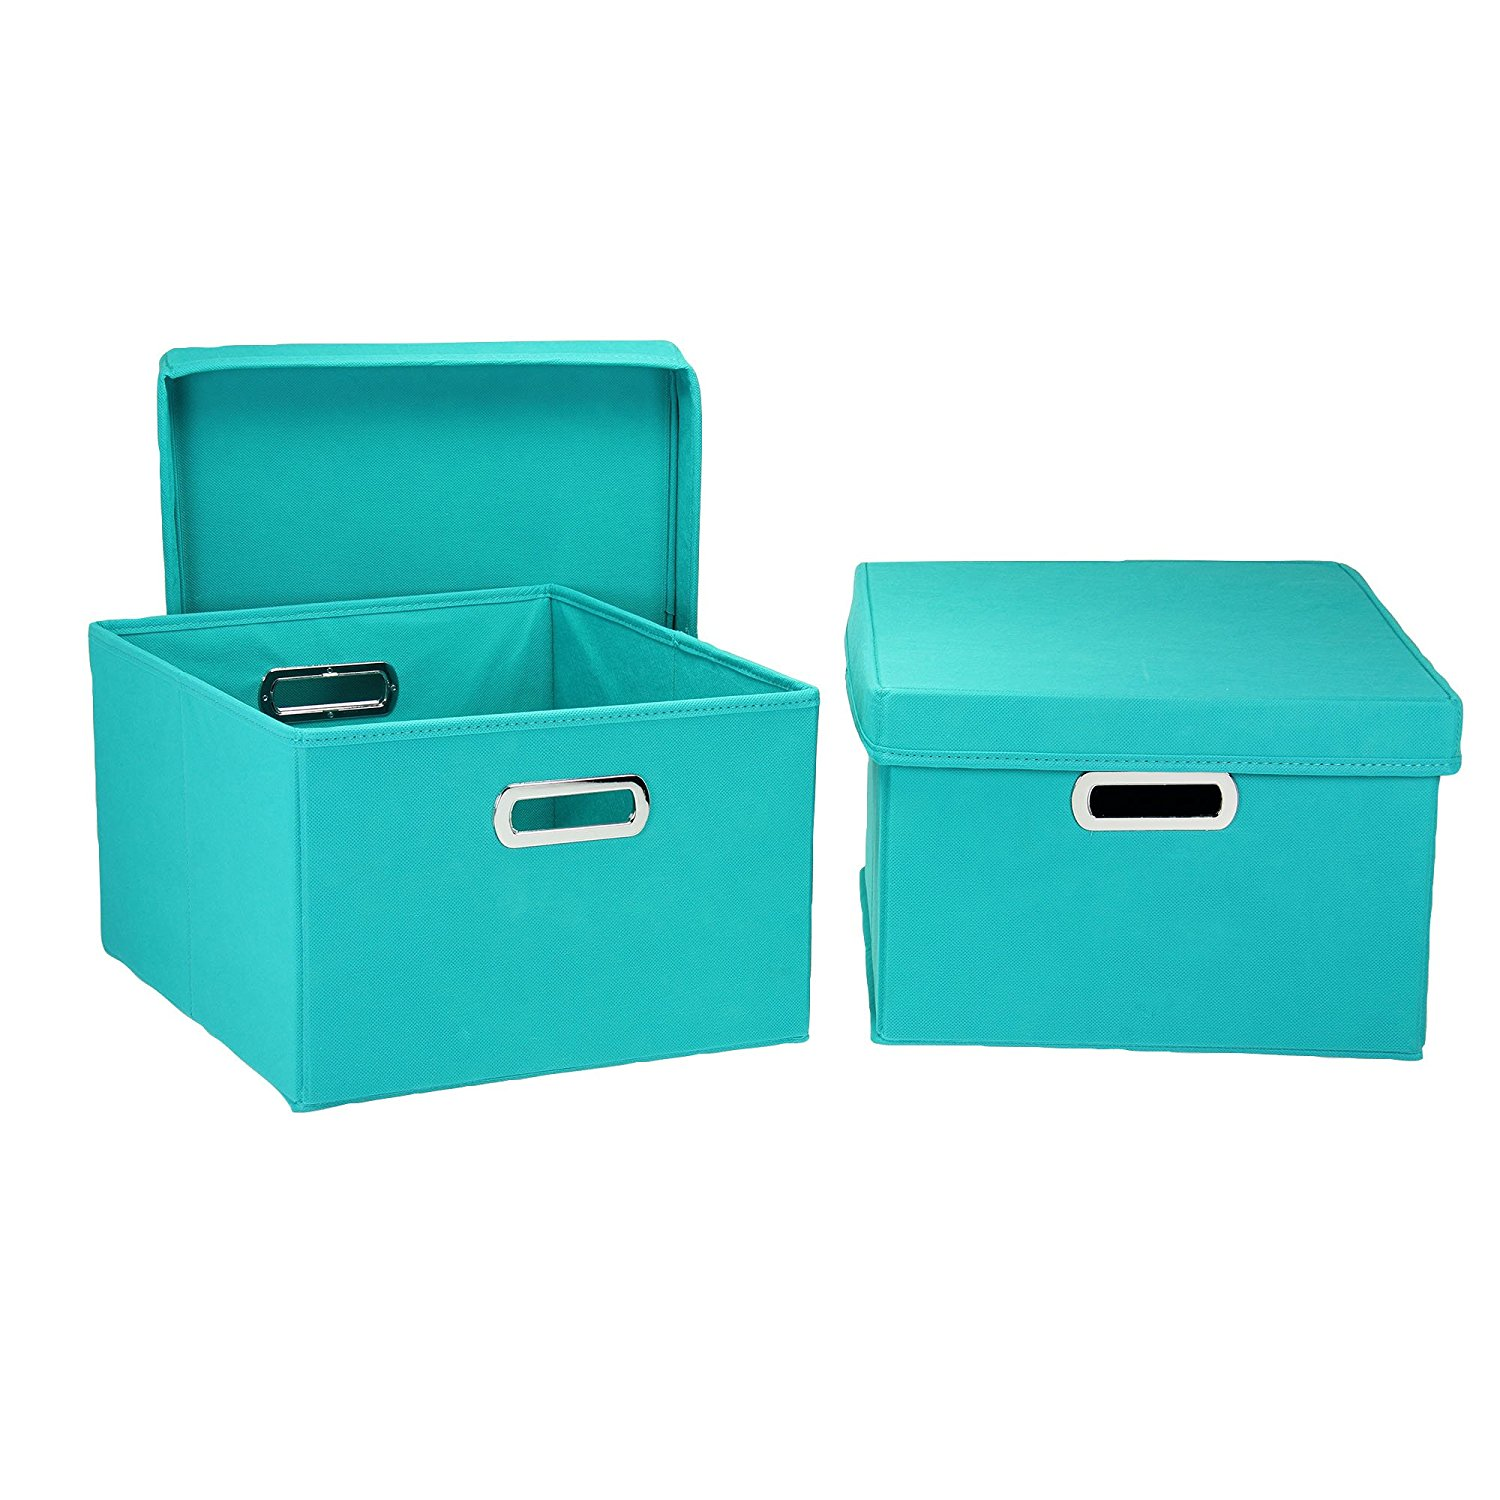 Household Essentials Fabric Storage Boxes